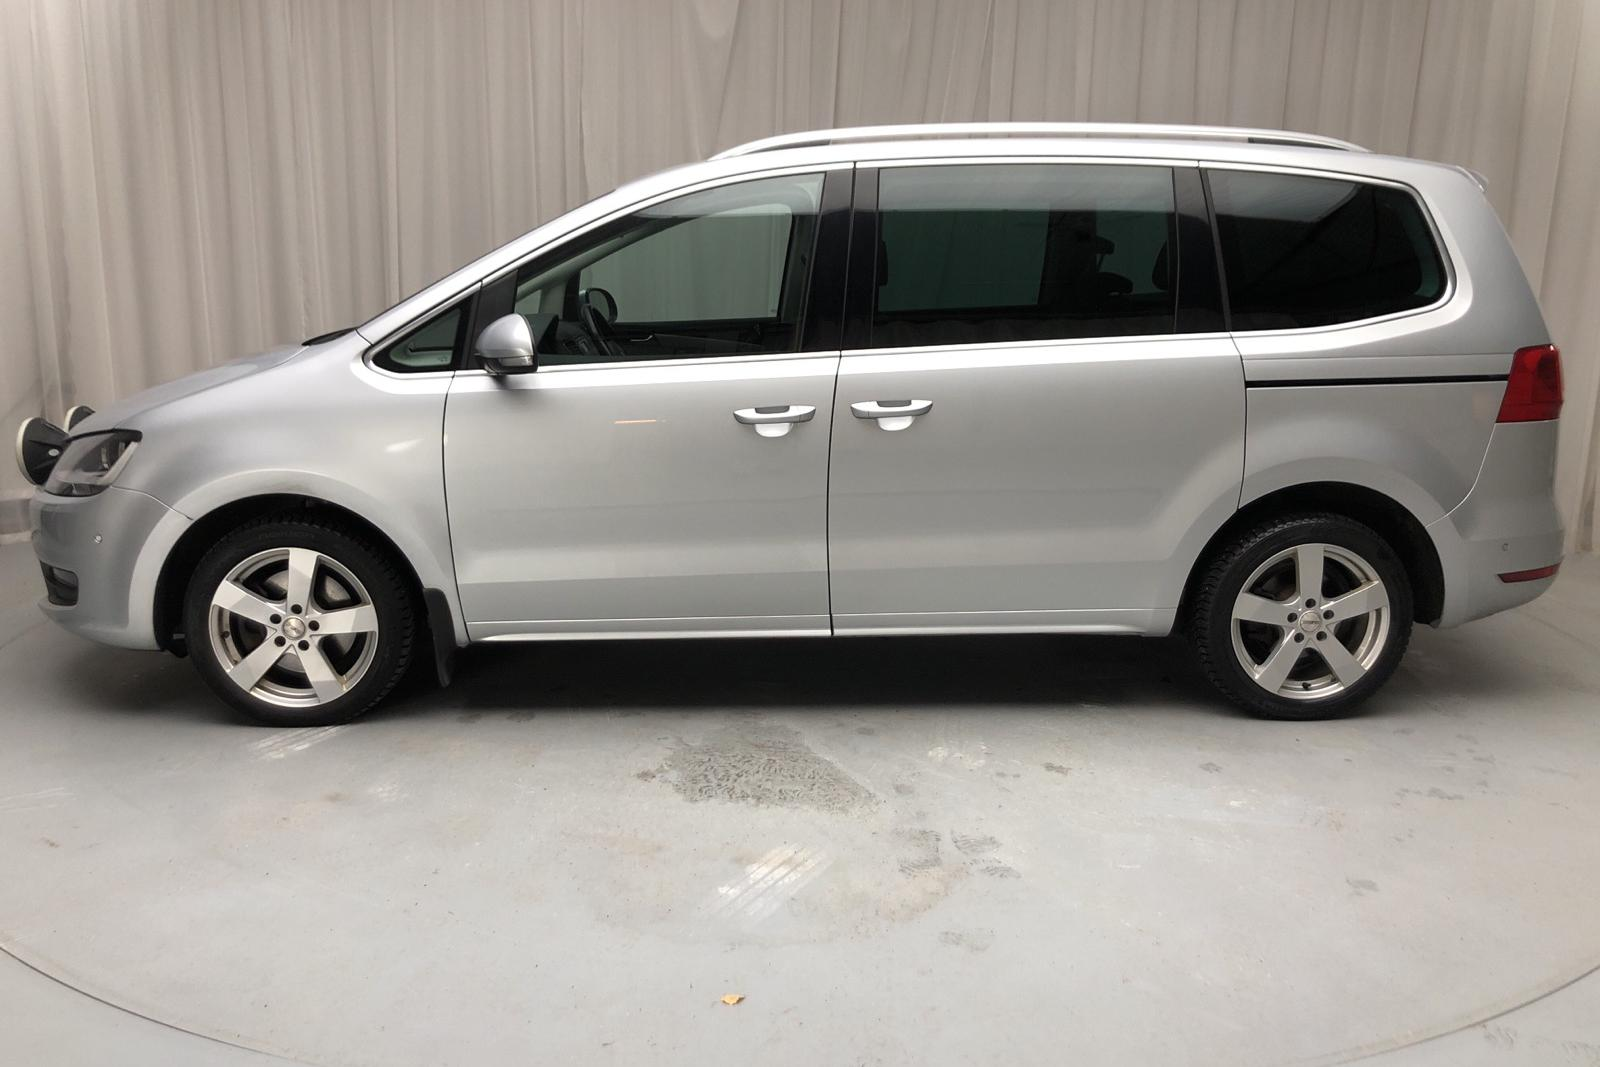 VW Sharan 2.0 TDI BlueMotion Technology 4motion (140hk) - 22 127 mil - Manuell - silver - 2014